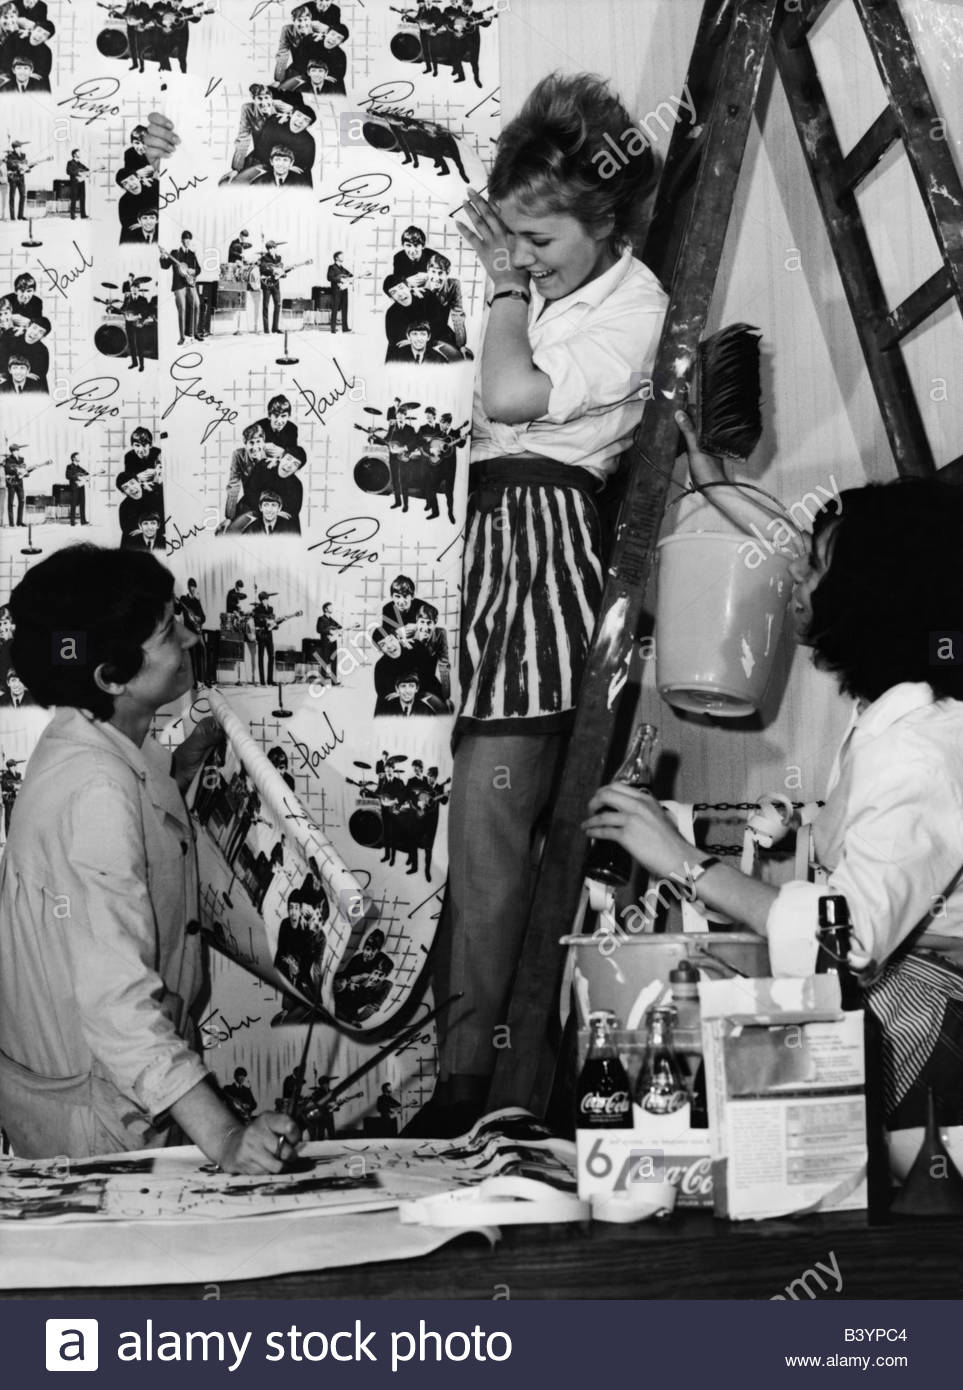 People Teenager Girls Are Wallpapering With Beatles Wallpaper 1964 Additional Rights